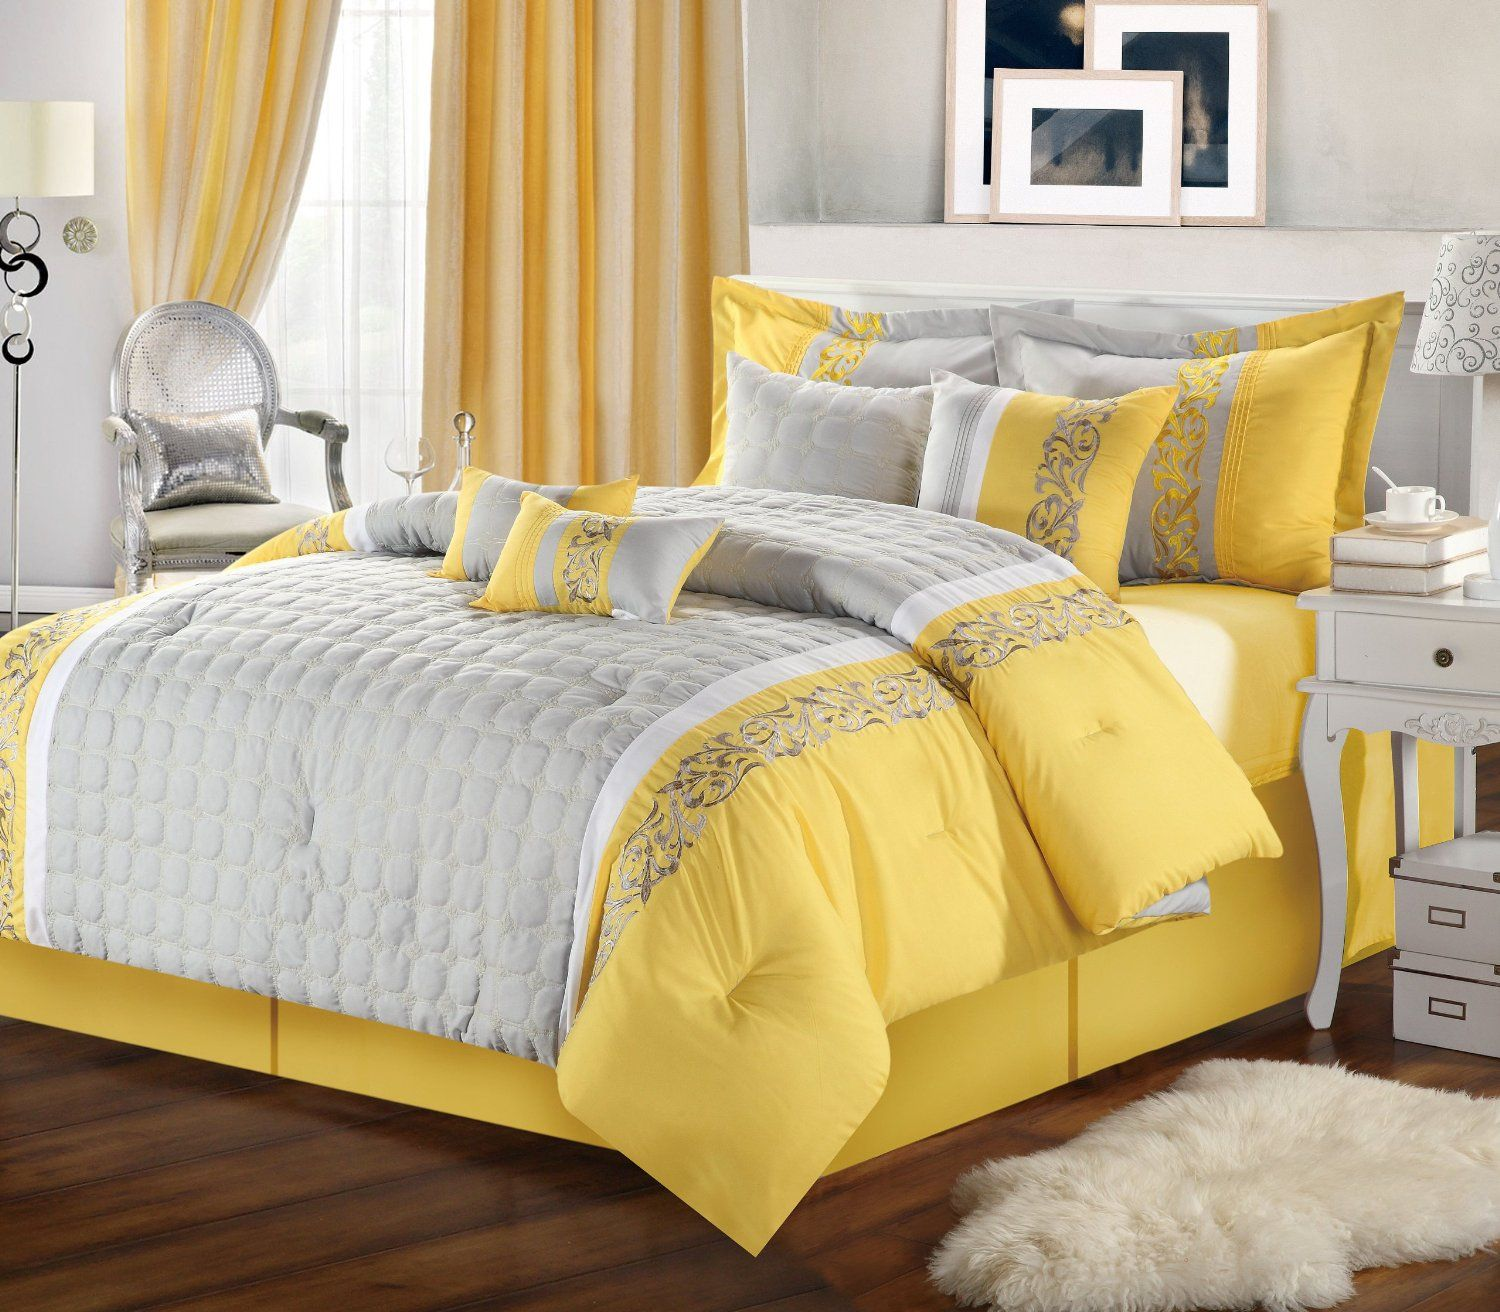 comforter sets | grey and yellow bedding sets - grey and yellow